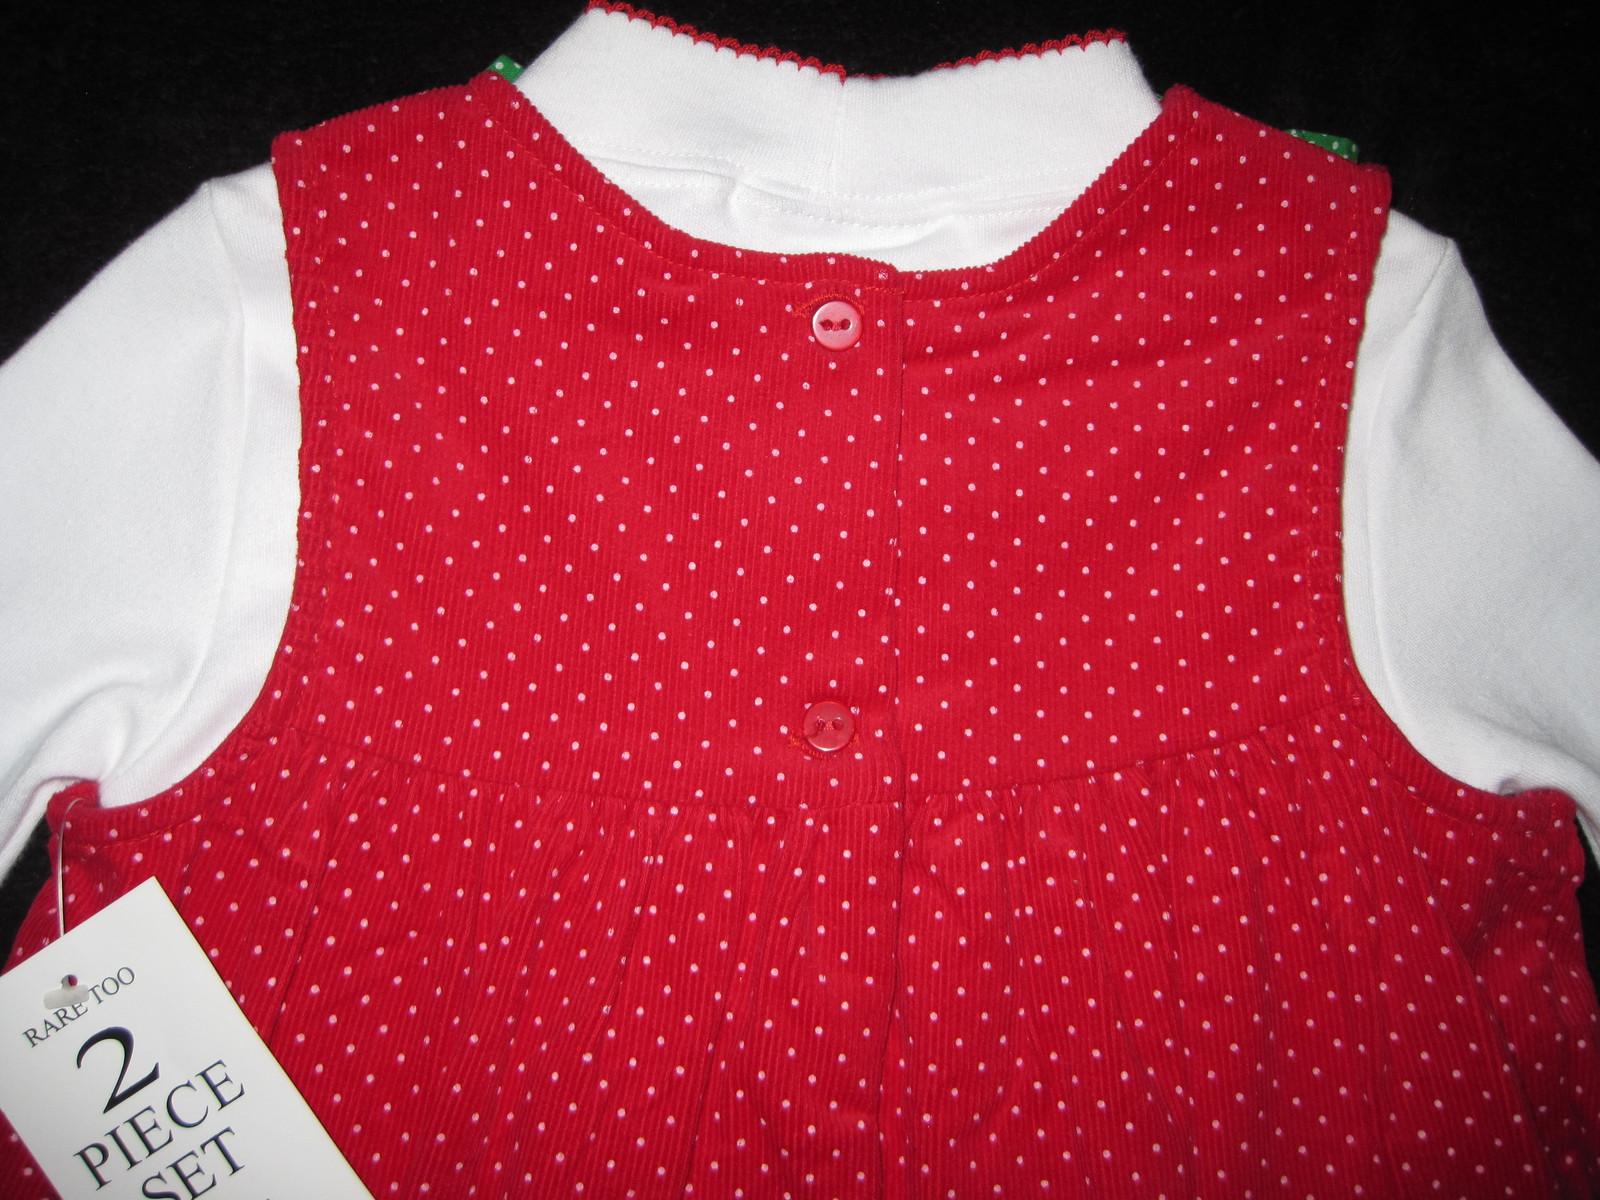 GIRLS 4T - Rare Too -  Candy Canes on Red Corduroy HOLIDAY JUMPER SET image 8